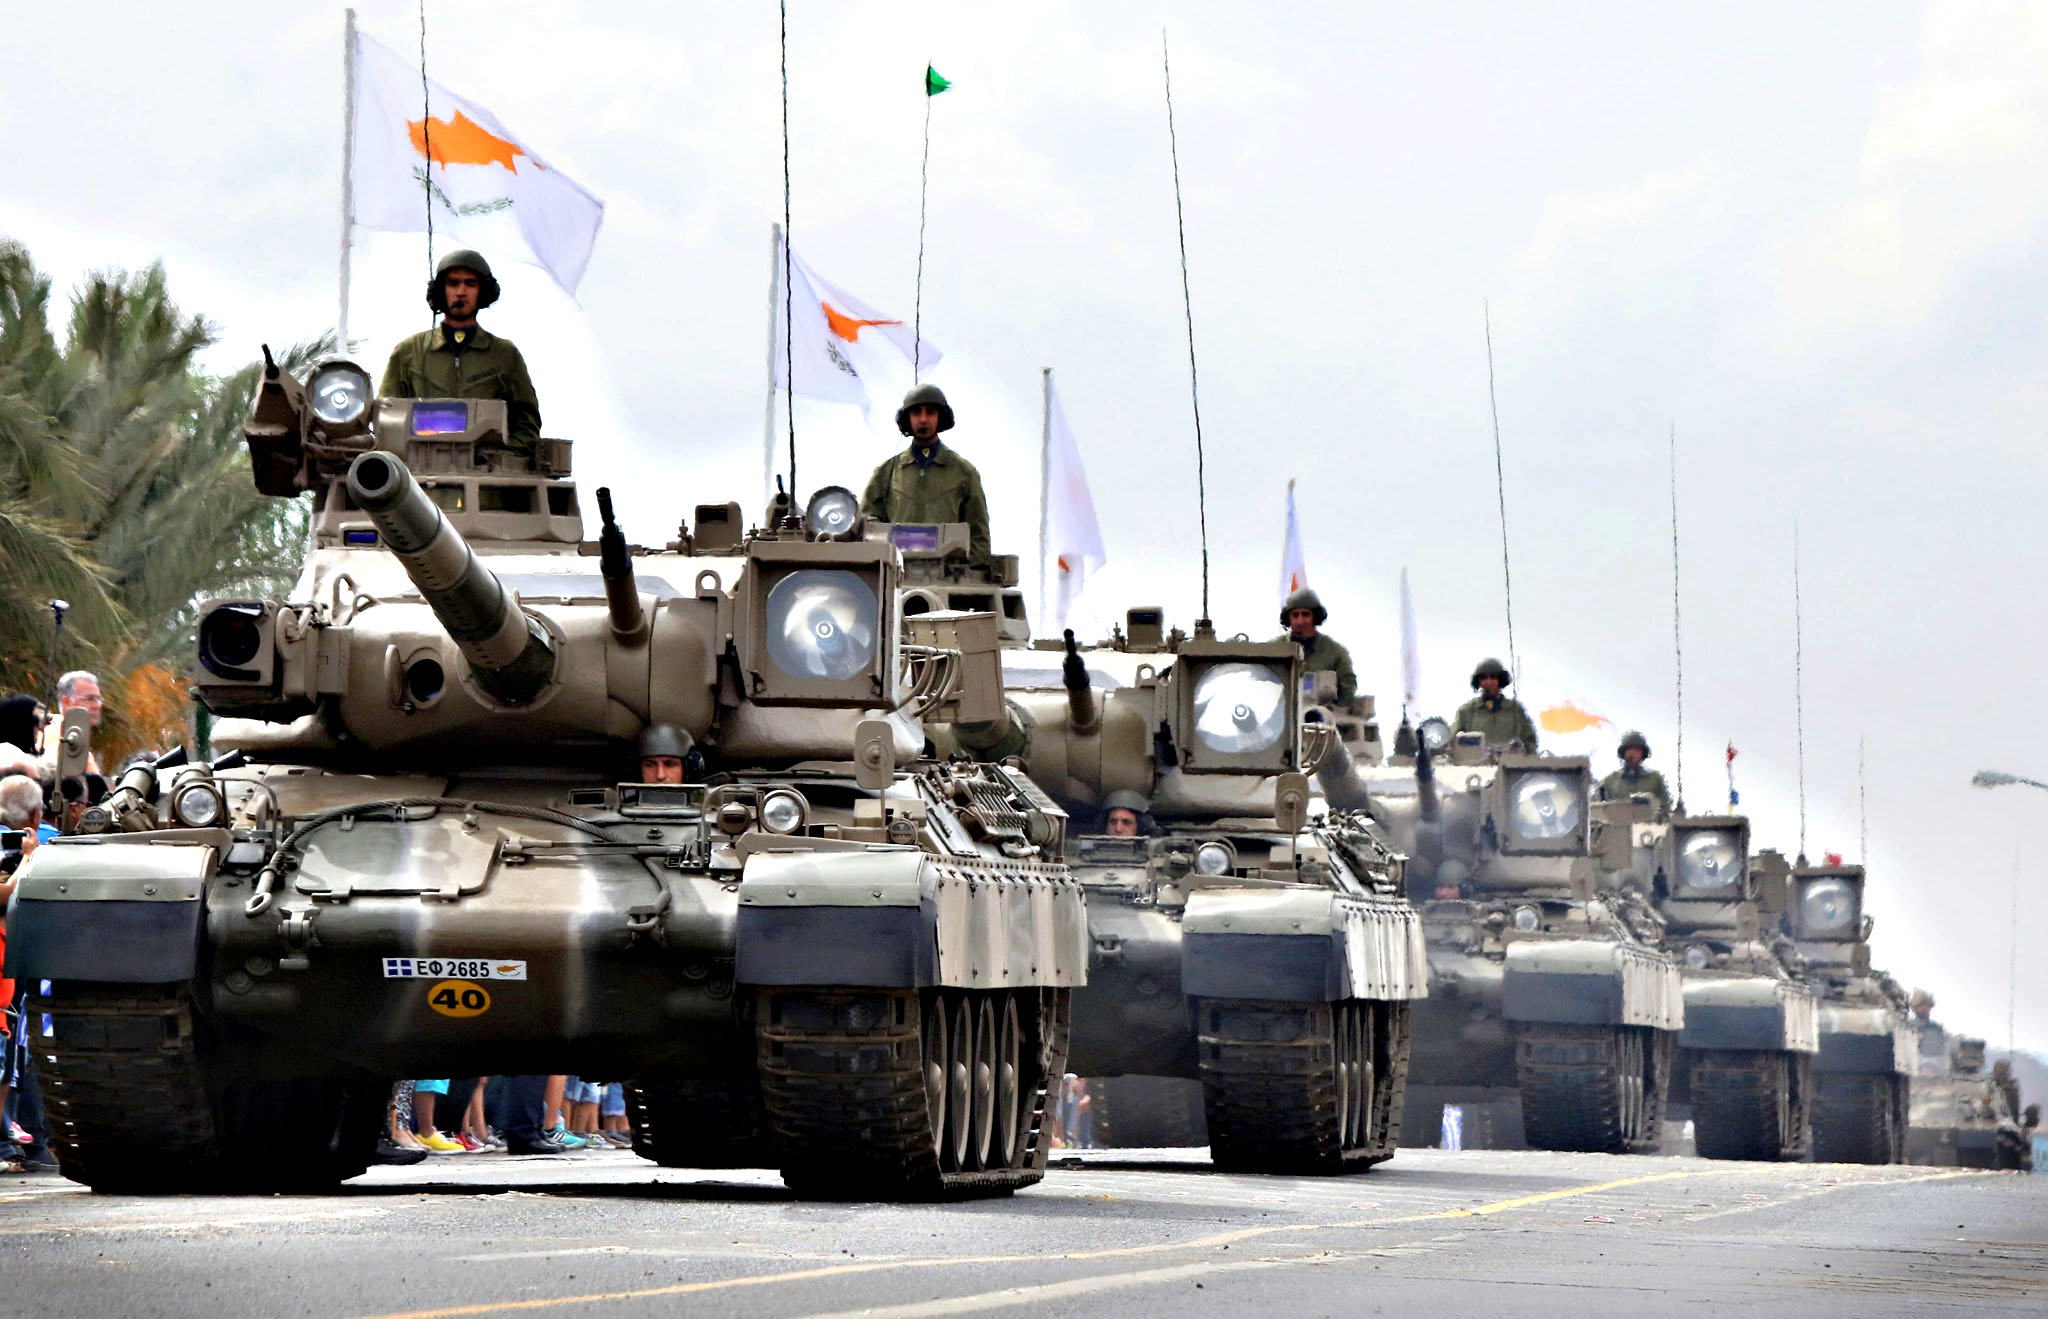 A column of tanks takes part in a military parade as part of the celebrations marking the 55th anniversary of the Republic of Cyprus in the presence of the President of the Republic Nicos Anastasiades and other high ranking government officials, in Nicosia, Cyprus, 01 October 2015.